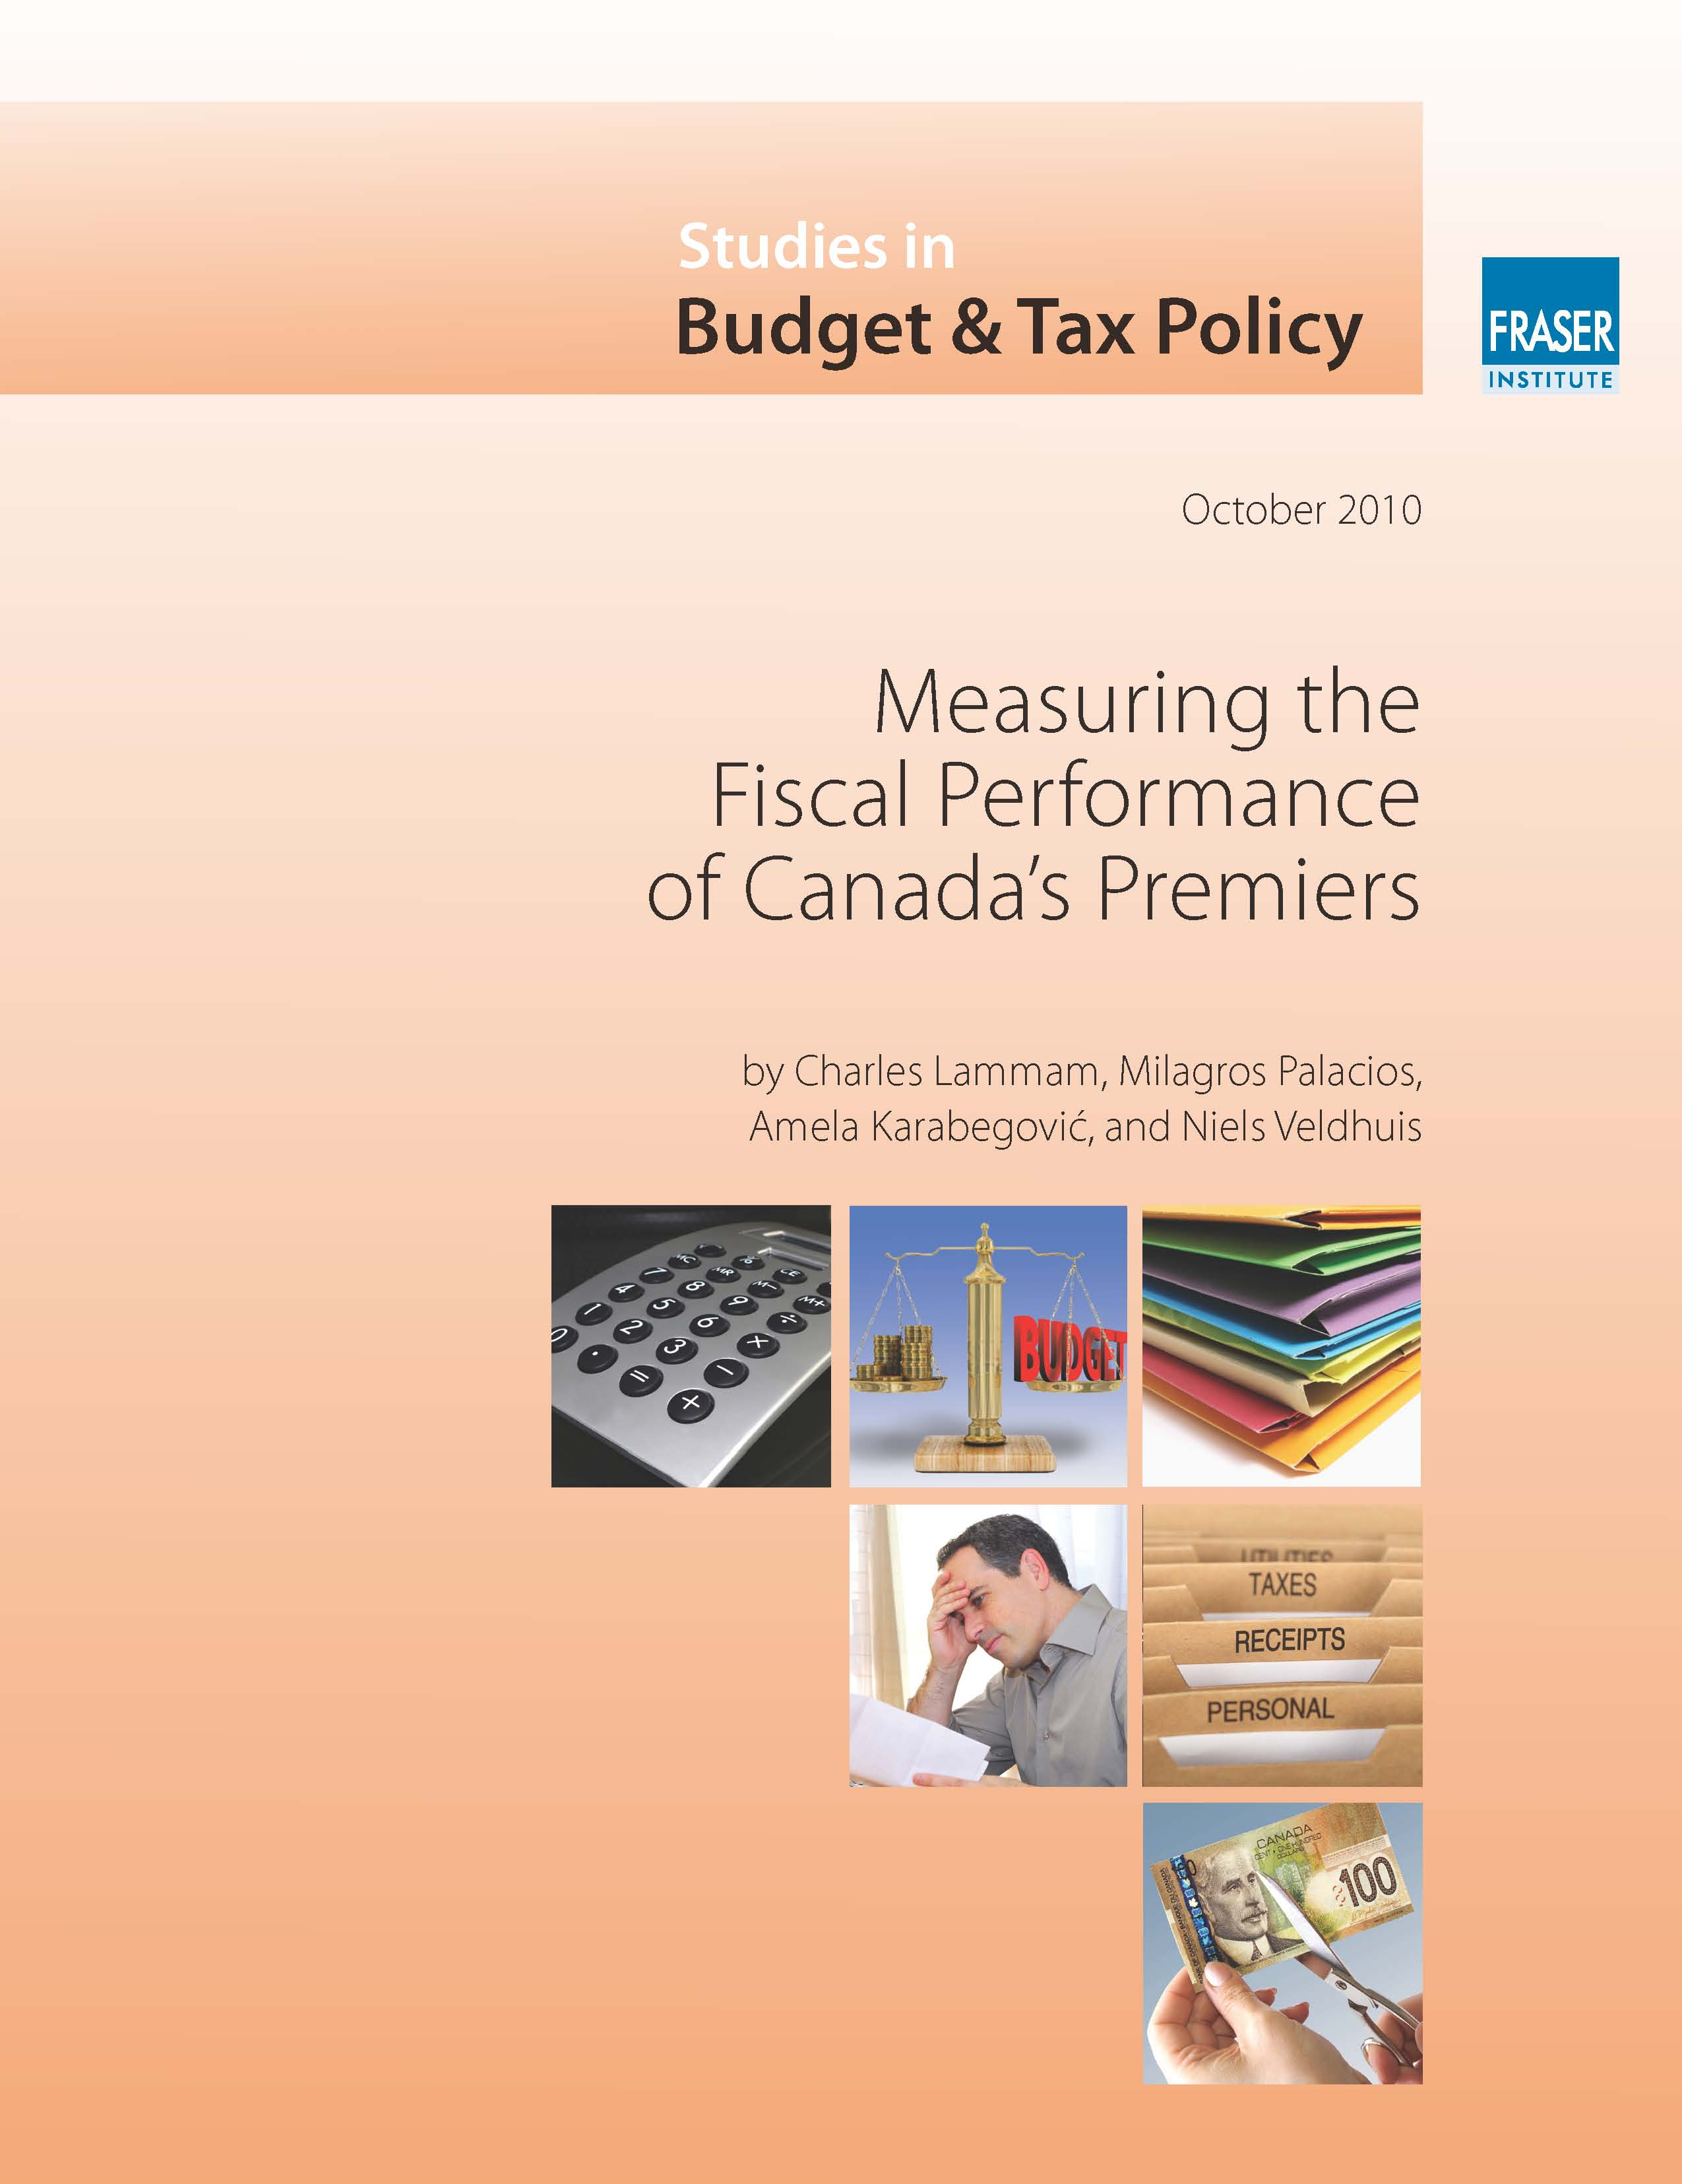 Measuring the Fiscal Performance of Canada's Premiers